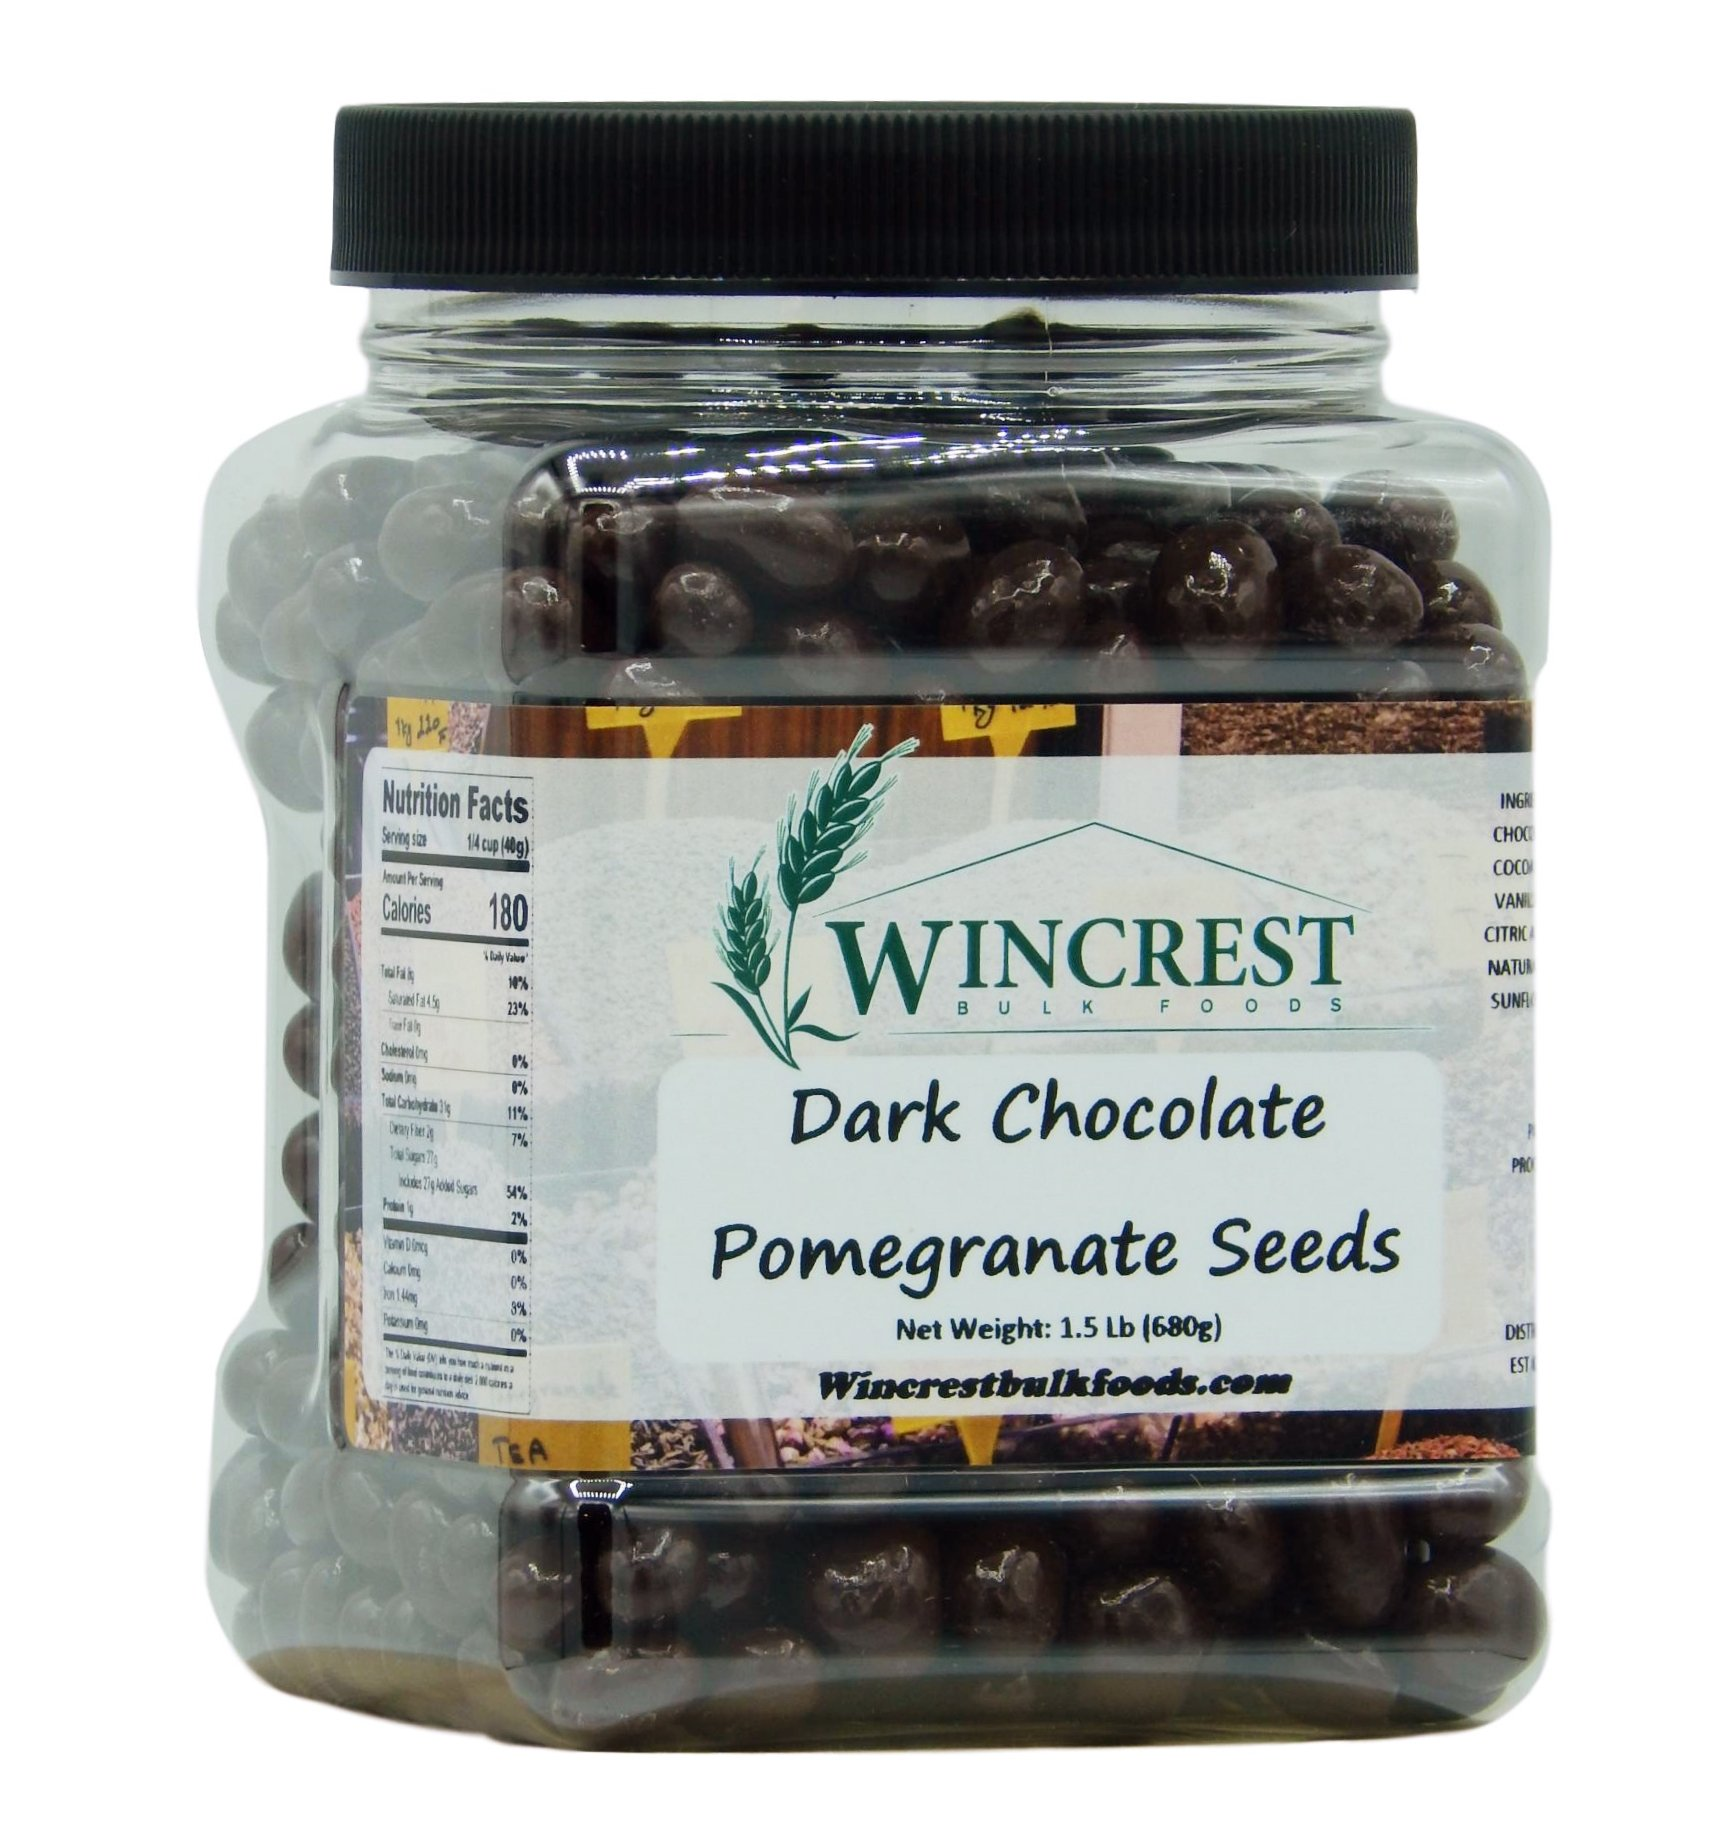 Dark Chocolate Covered Whole Pomegranate Seeds (Arils) - 1.5 Lb by WinCrest BulkFoods